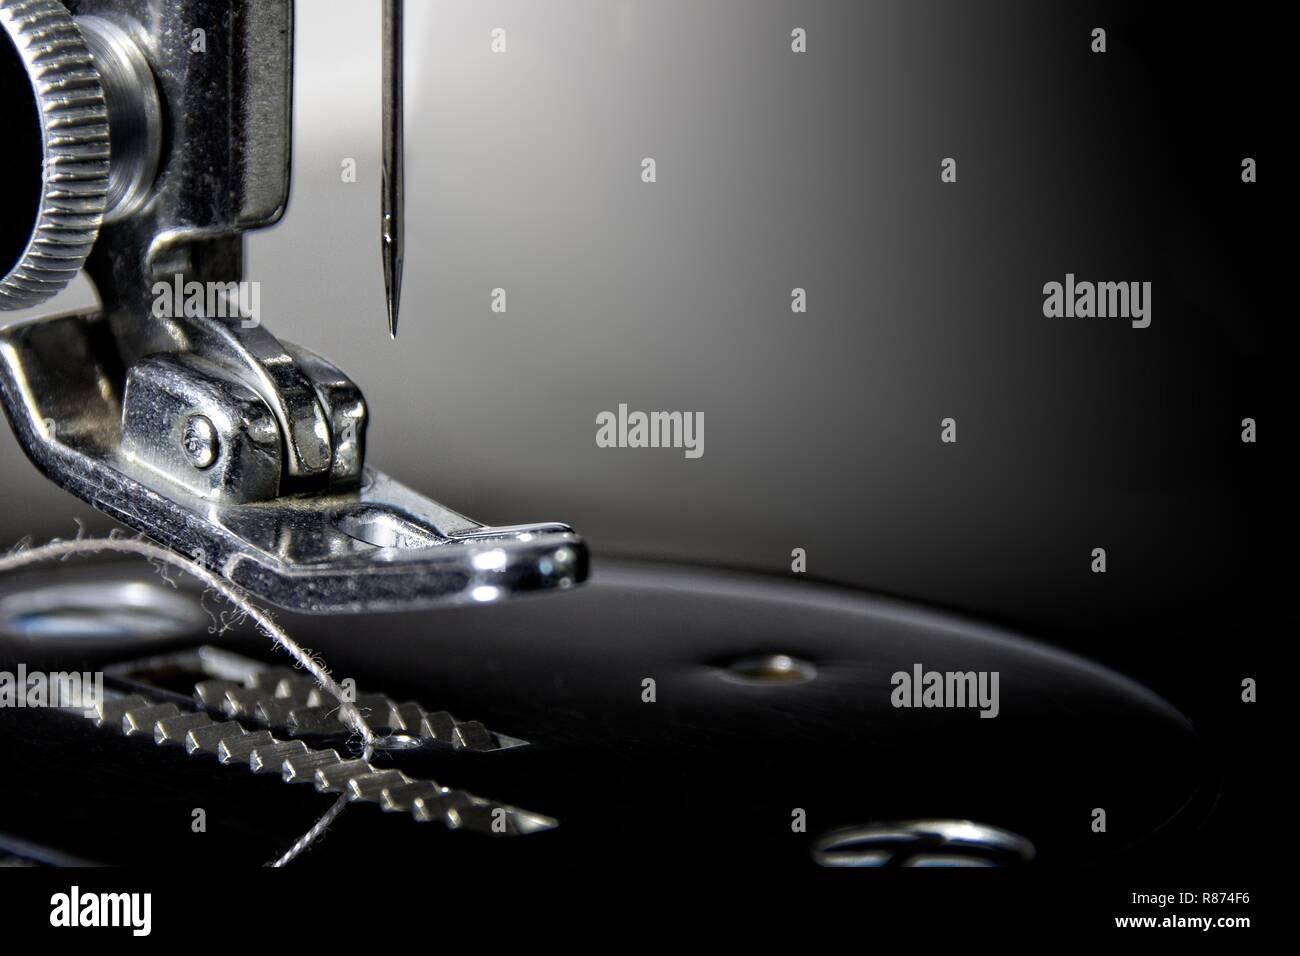 Get Needled: Macro photograph of part of a 1940's sewing machine. Sharp, detailed photo of the needle and pusher. Suitable office/hotel wall hanging. - Stock Image